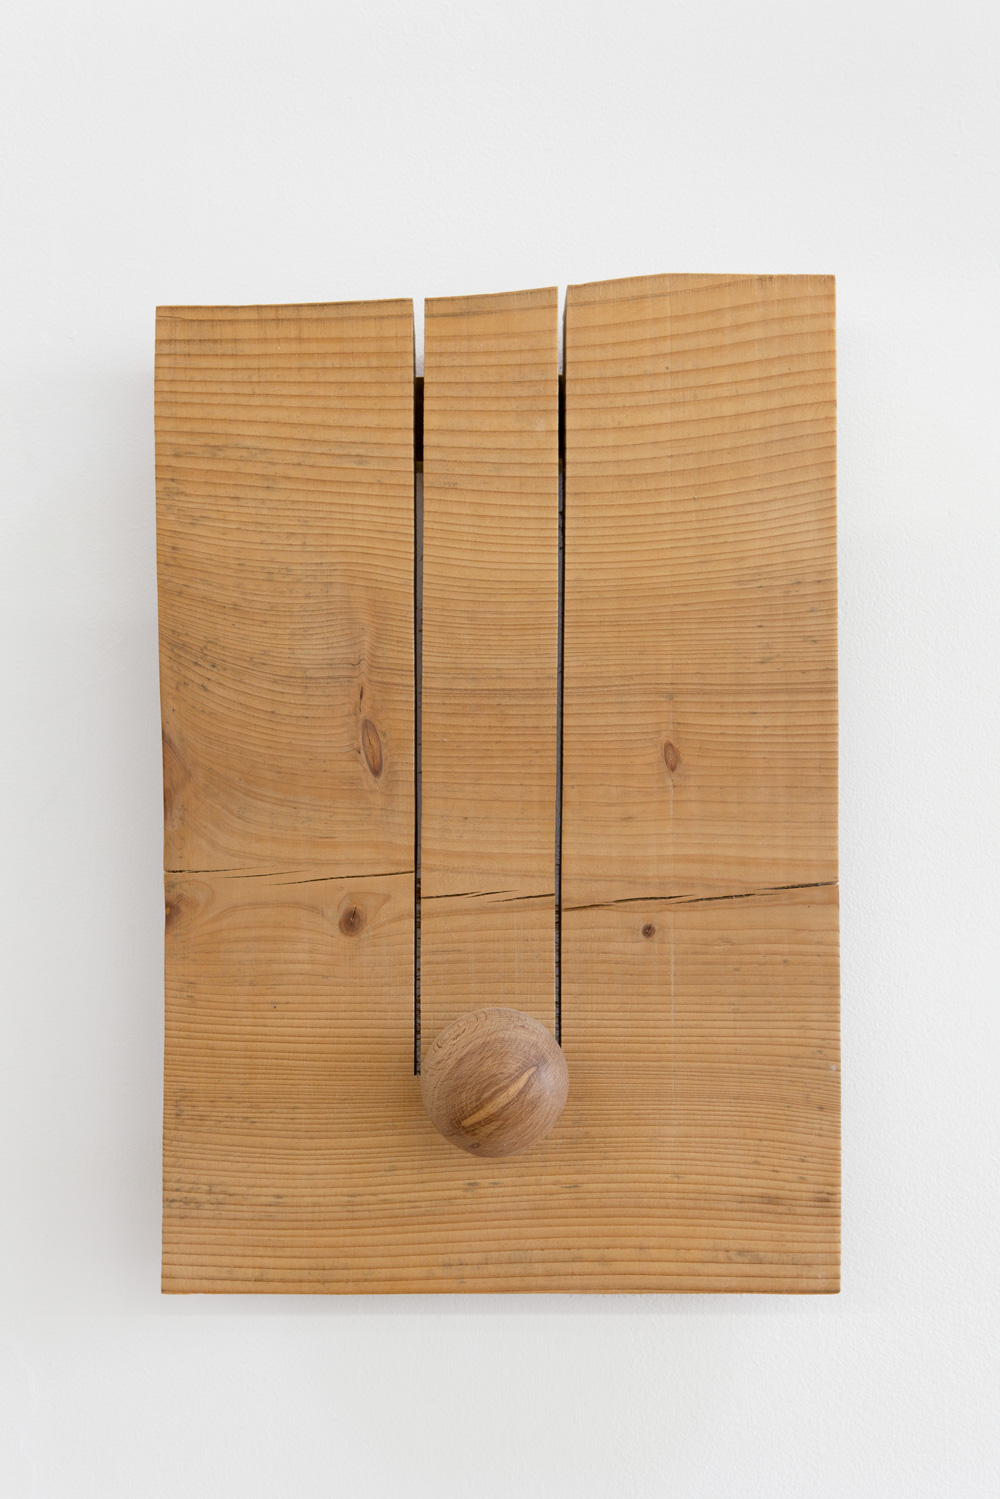 Site in Space , 2005 空間場 ( Kūkanba ) Wood 16 3/4 x 11 x 5 1/2 inches 42.5 x 28 x 14 cm